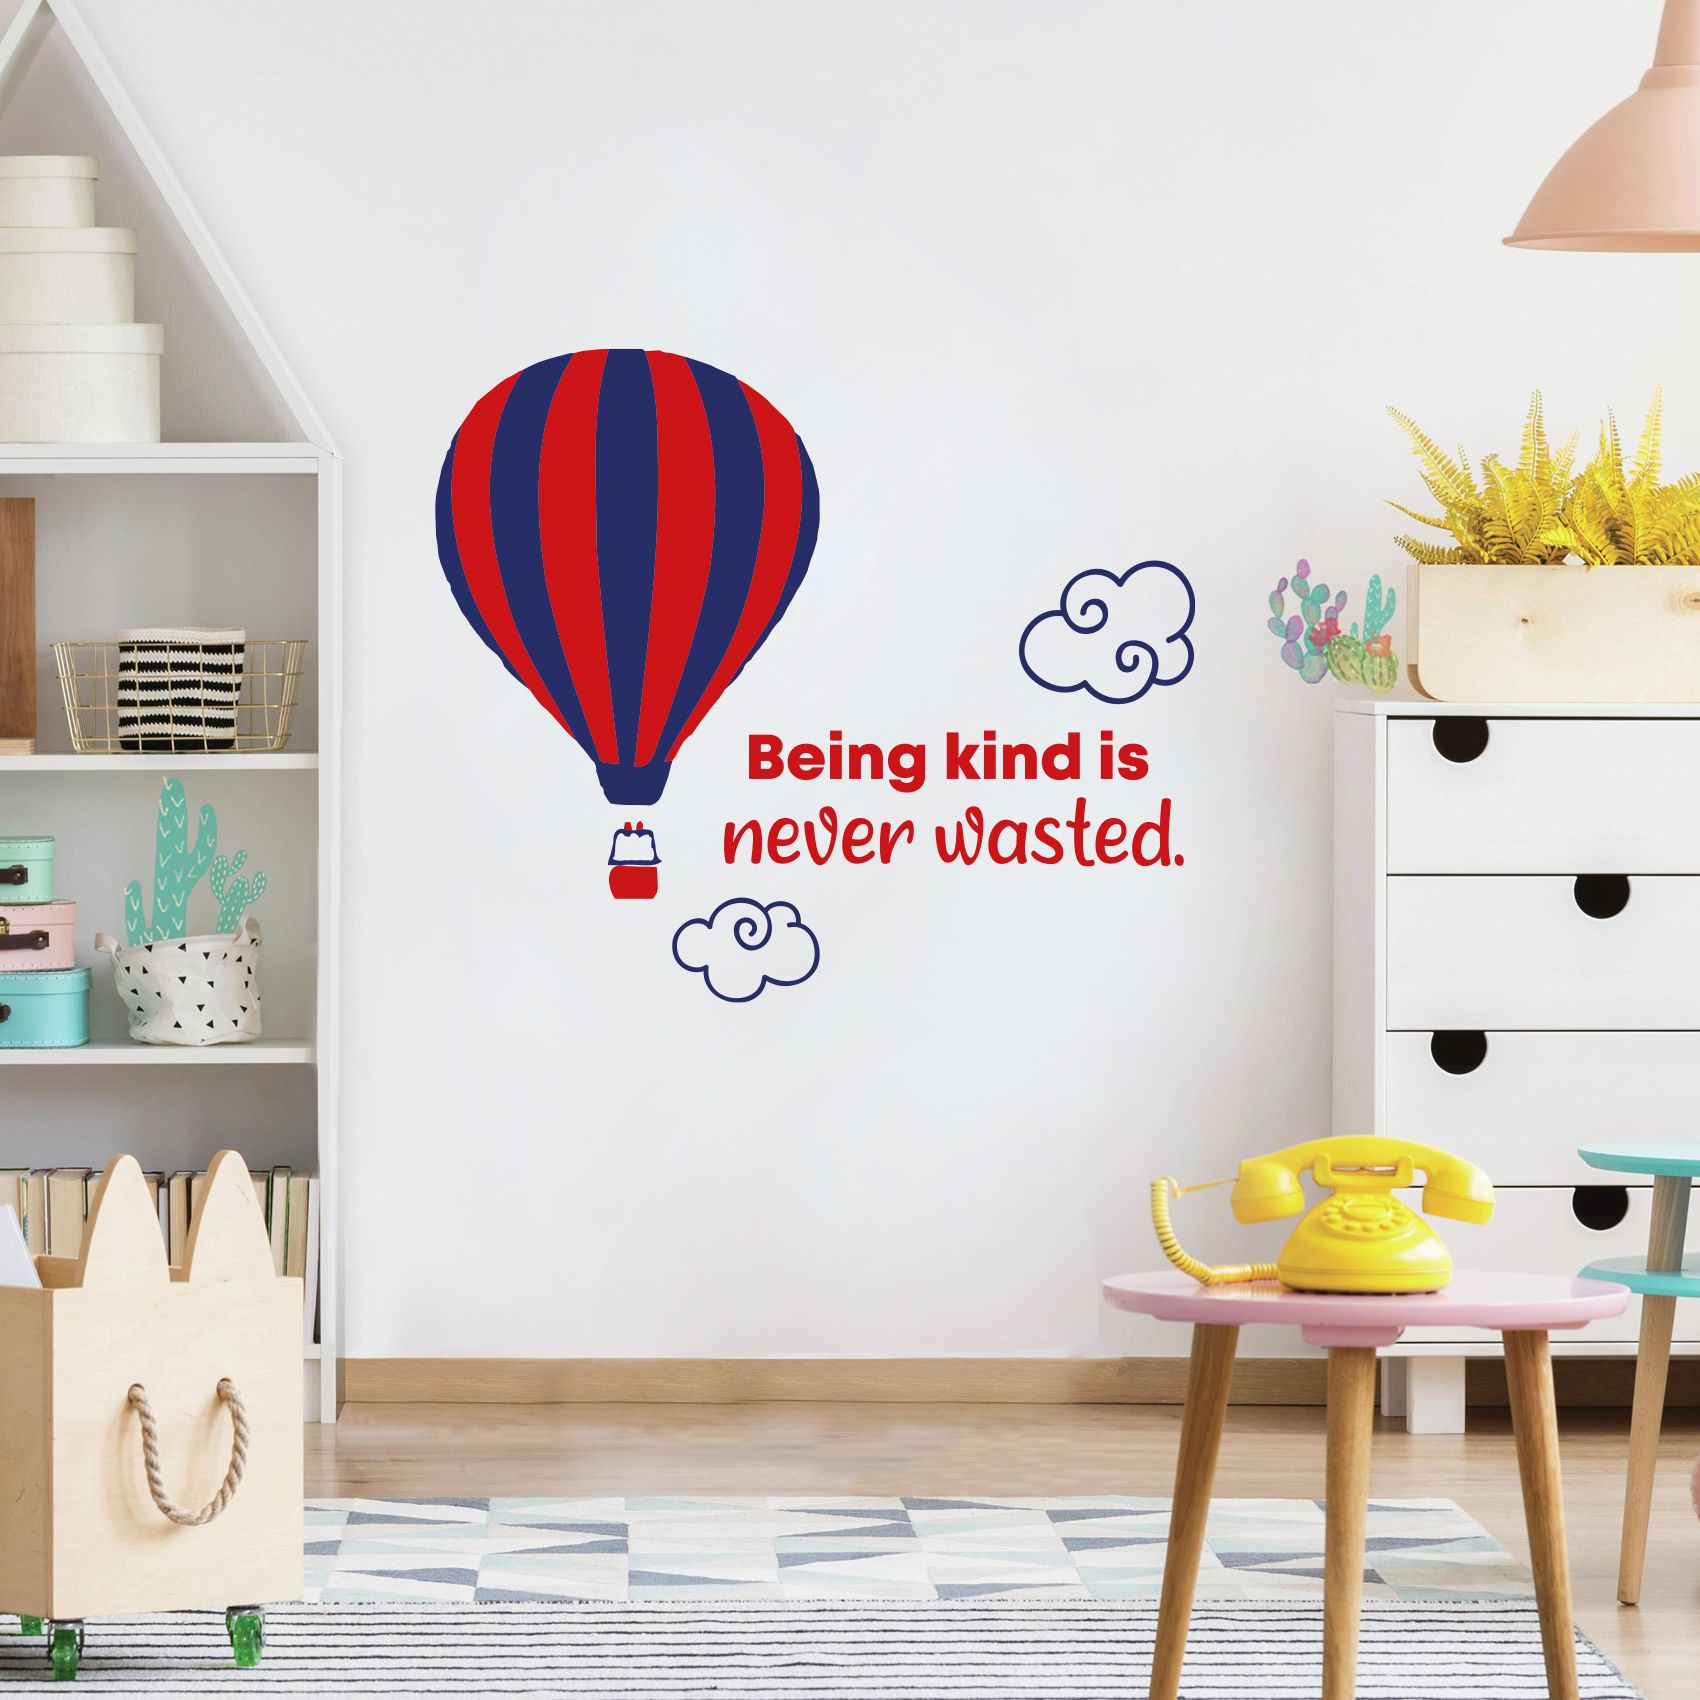 Being Kind Hot Air Balloon Quote Cartoon Quotes Decors Wall Sticker Art Design Decal For Girls Boys Kids Room Bedroom Nursery Kindergarten Home Decor Stickers Wall Art Vinyl Decoration 27x30 Inch